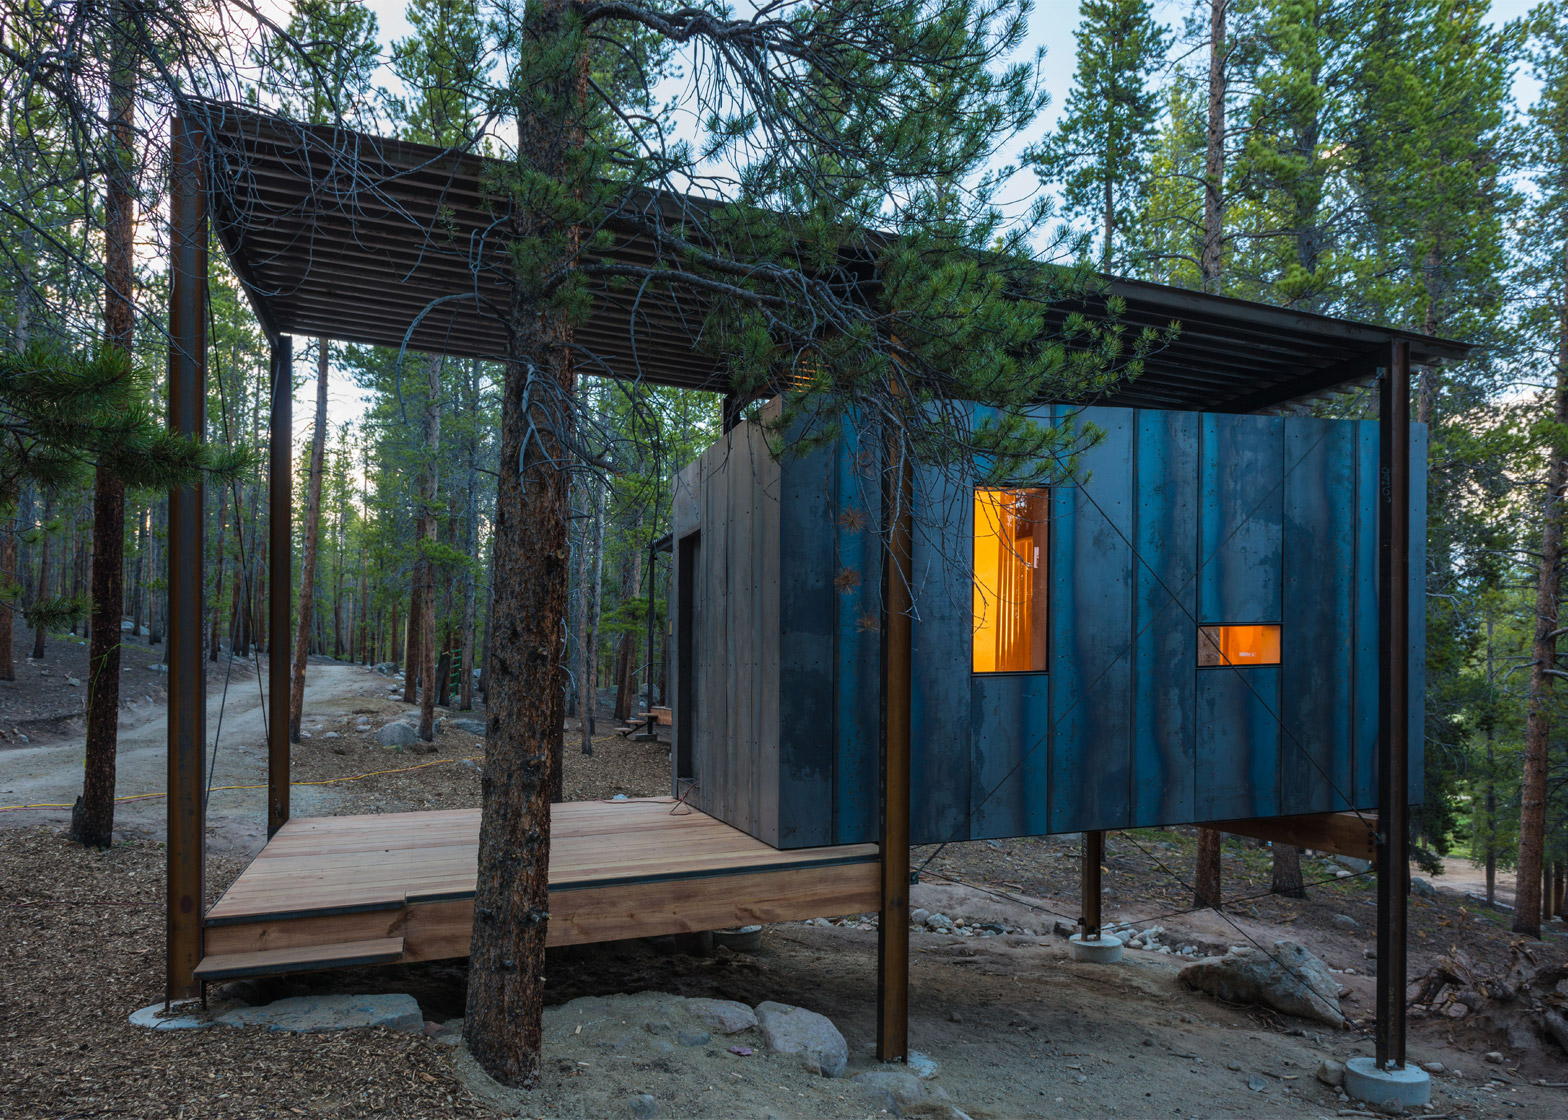 denver inspiration best in perfect colorado with home designing cabins on vacation